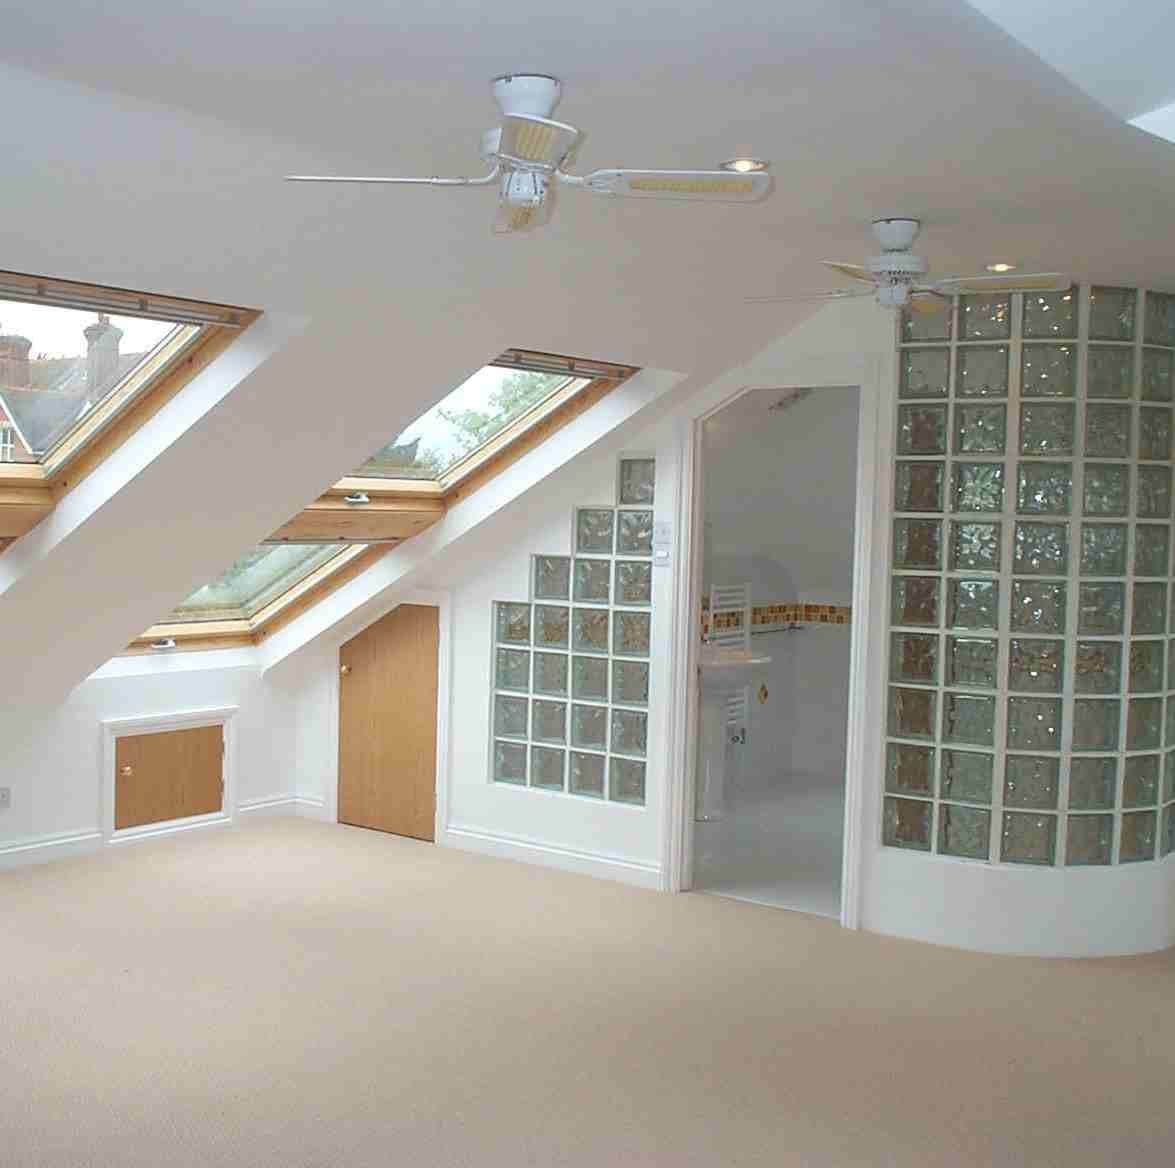 Attic Loftplan Loft Conversions The Leading Loft